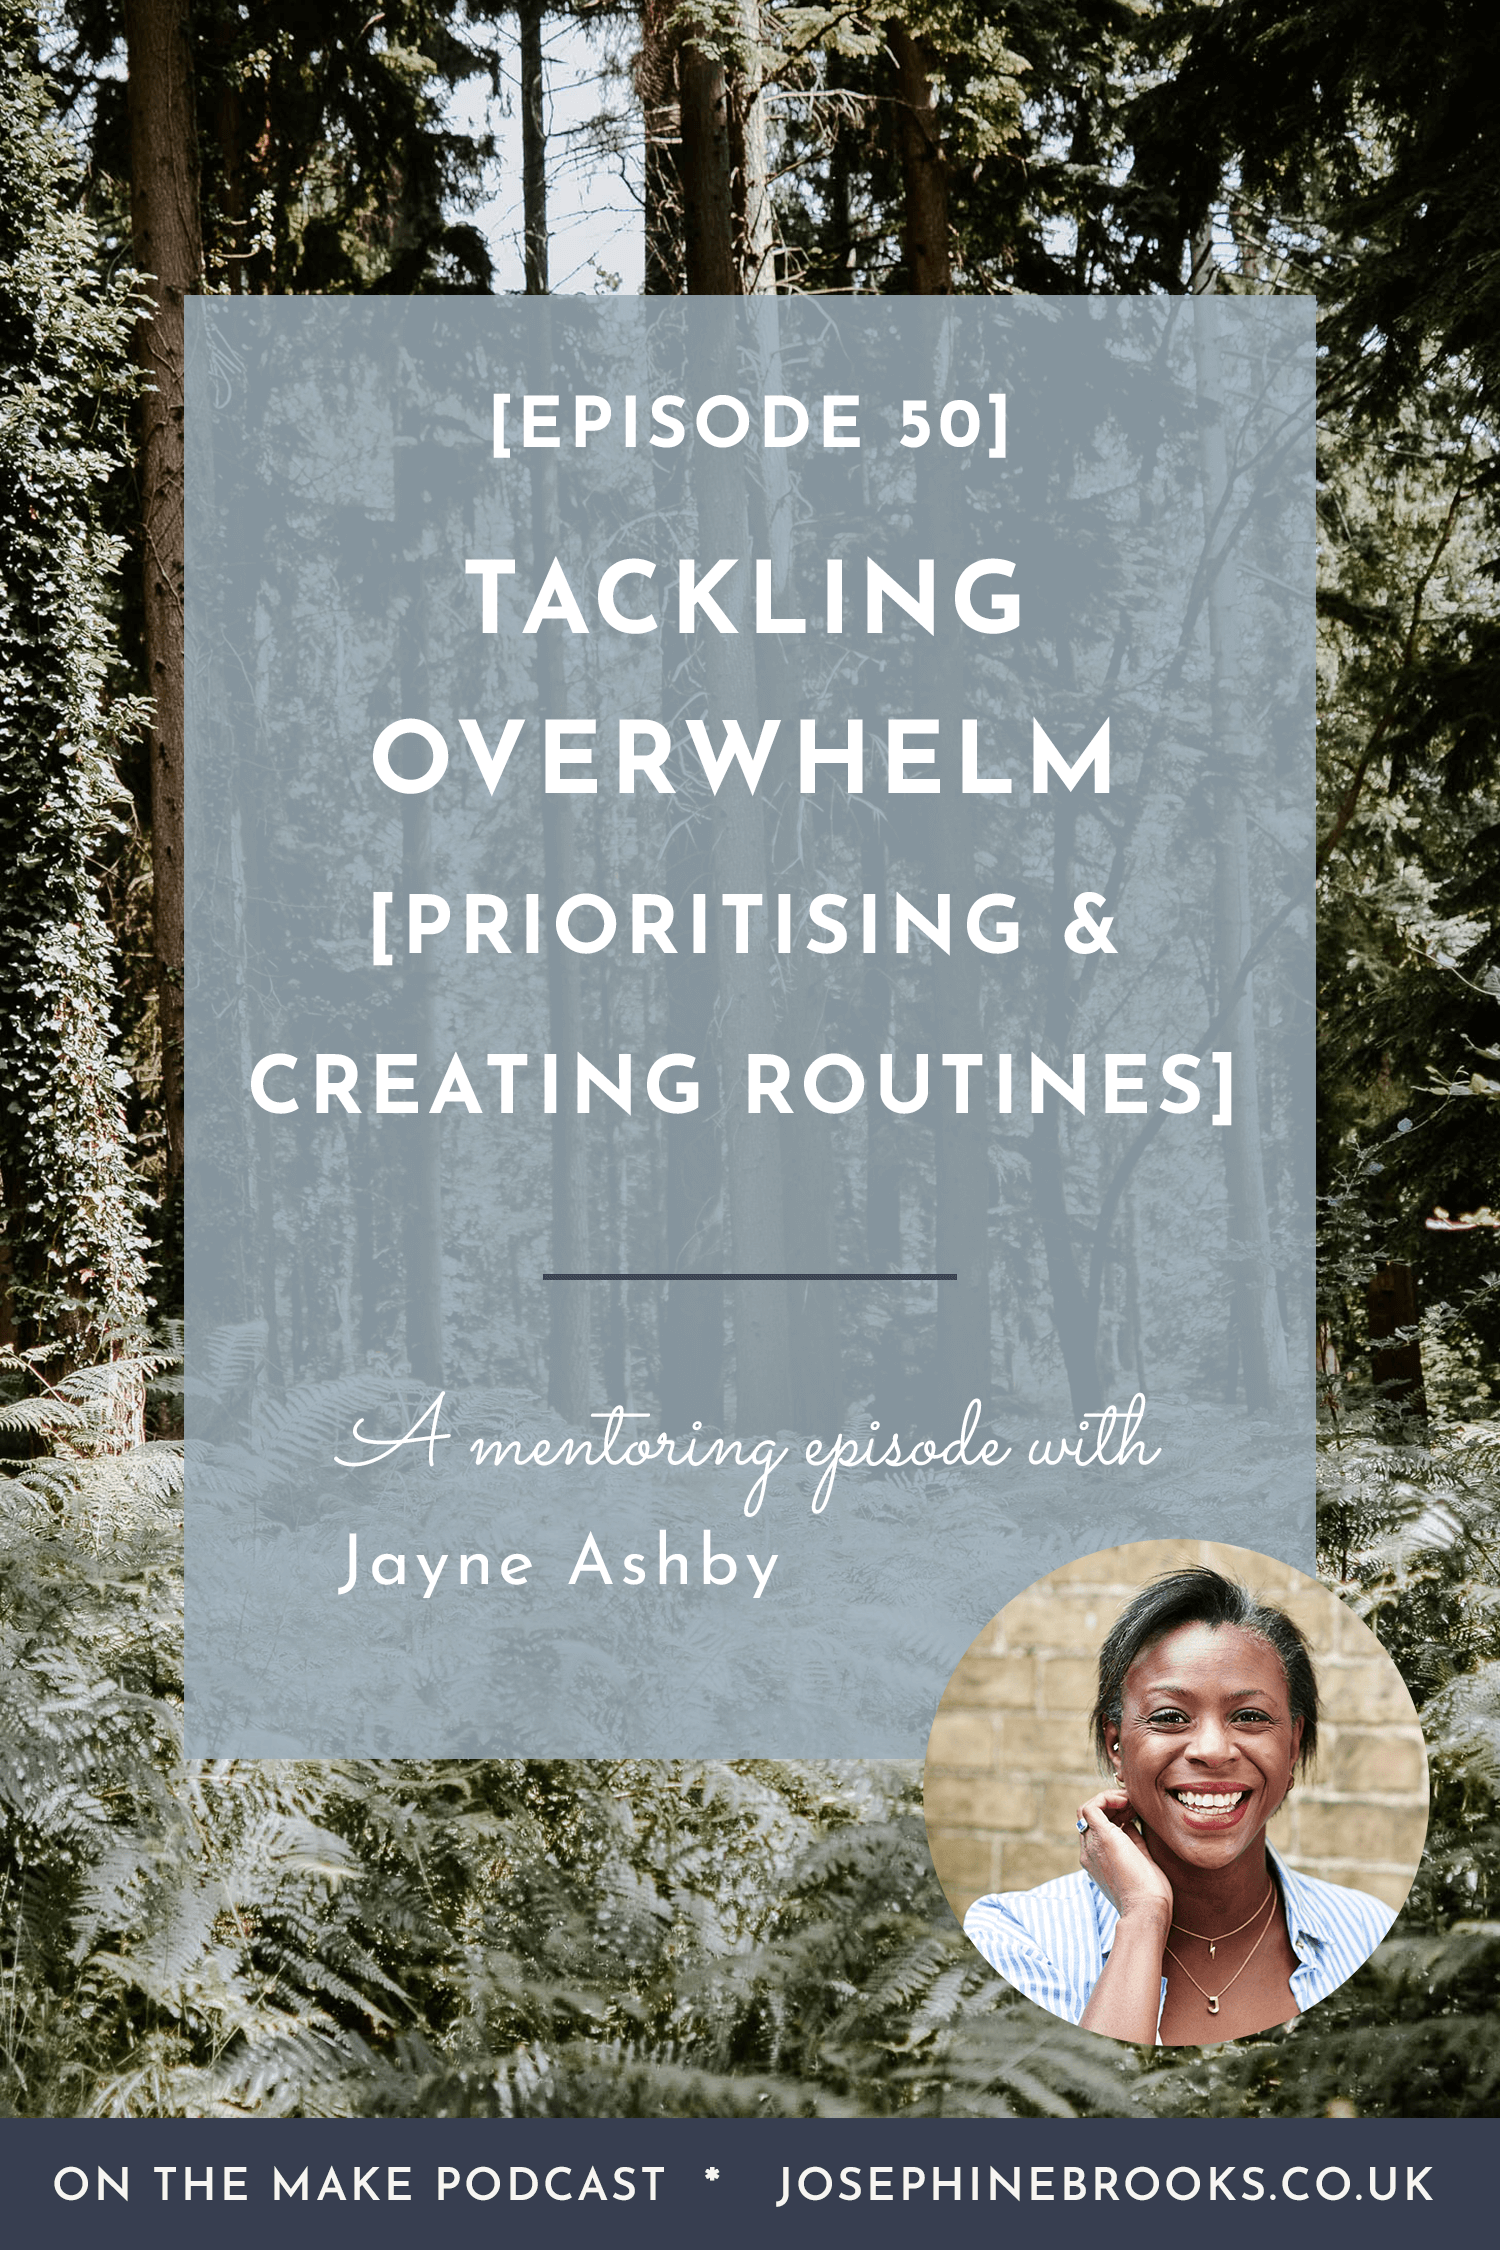 Tackling Overwhelm Through Prioritising and Crerating a Routine - Episode 50 of On The Make / Make a Plan, Make it Happen podcast hosted by Josephine Brooks